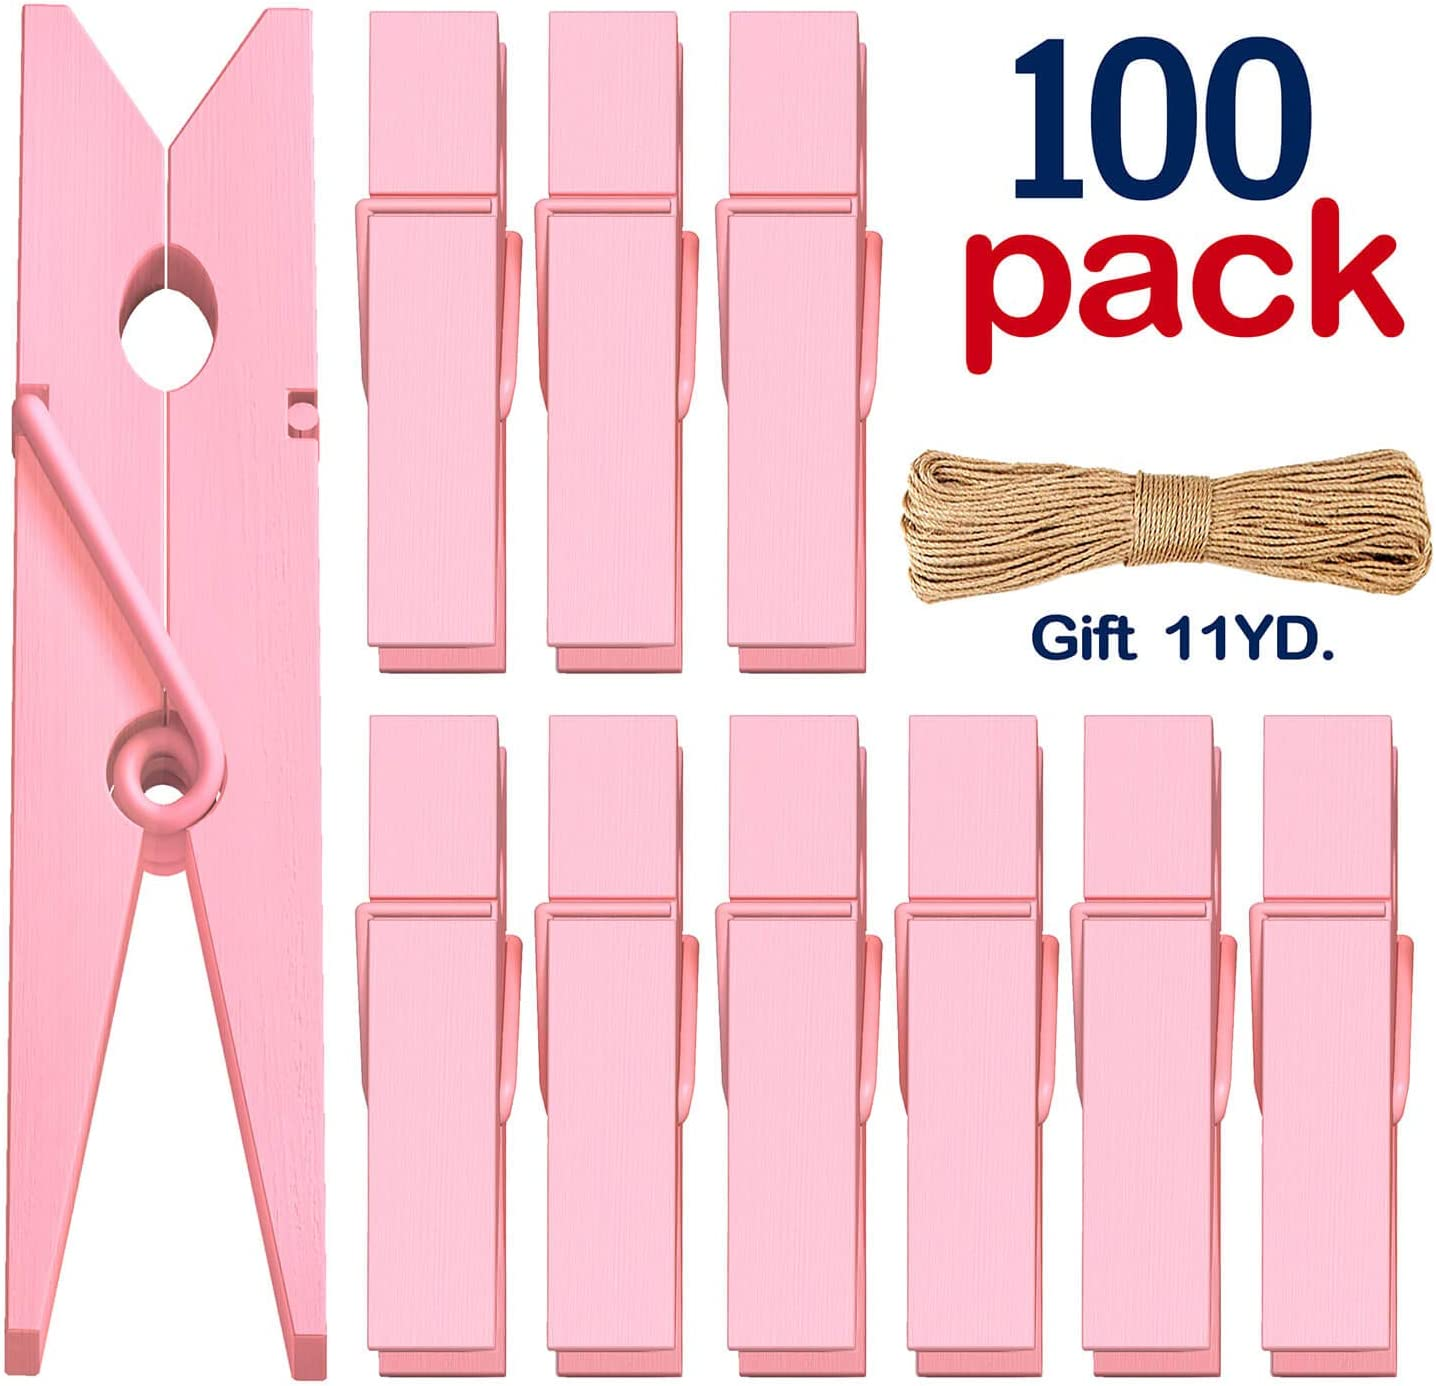 Clothes Pins Mini Clothespins Pink - 100 PCS Wooden Small Clothespins for Pictures with Jute Twine Tiny Photo Paper Clip, Ideal for Baby Shower, Crafts, Chip Clips, Home Office Decoration